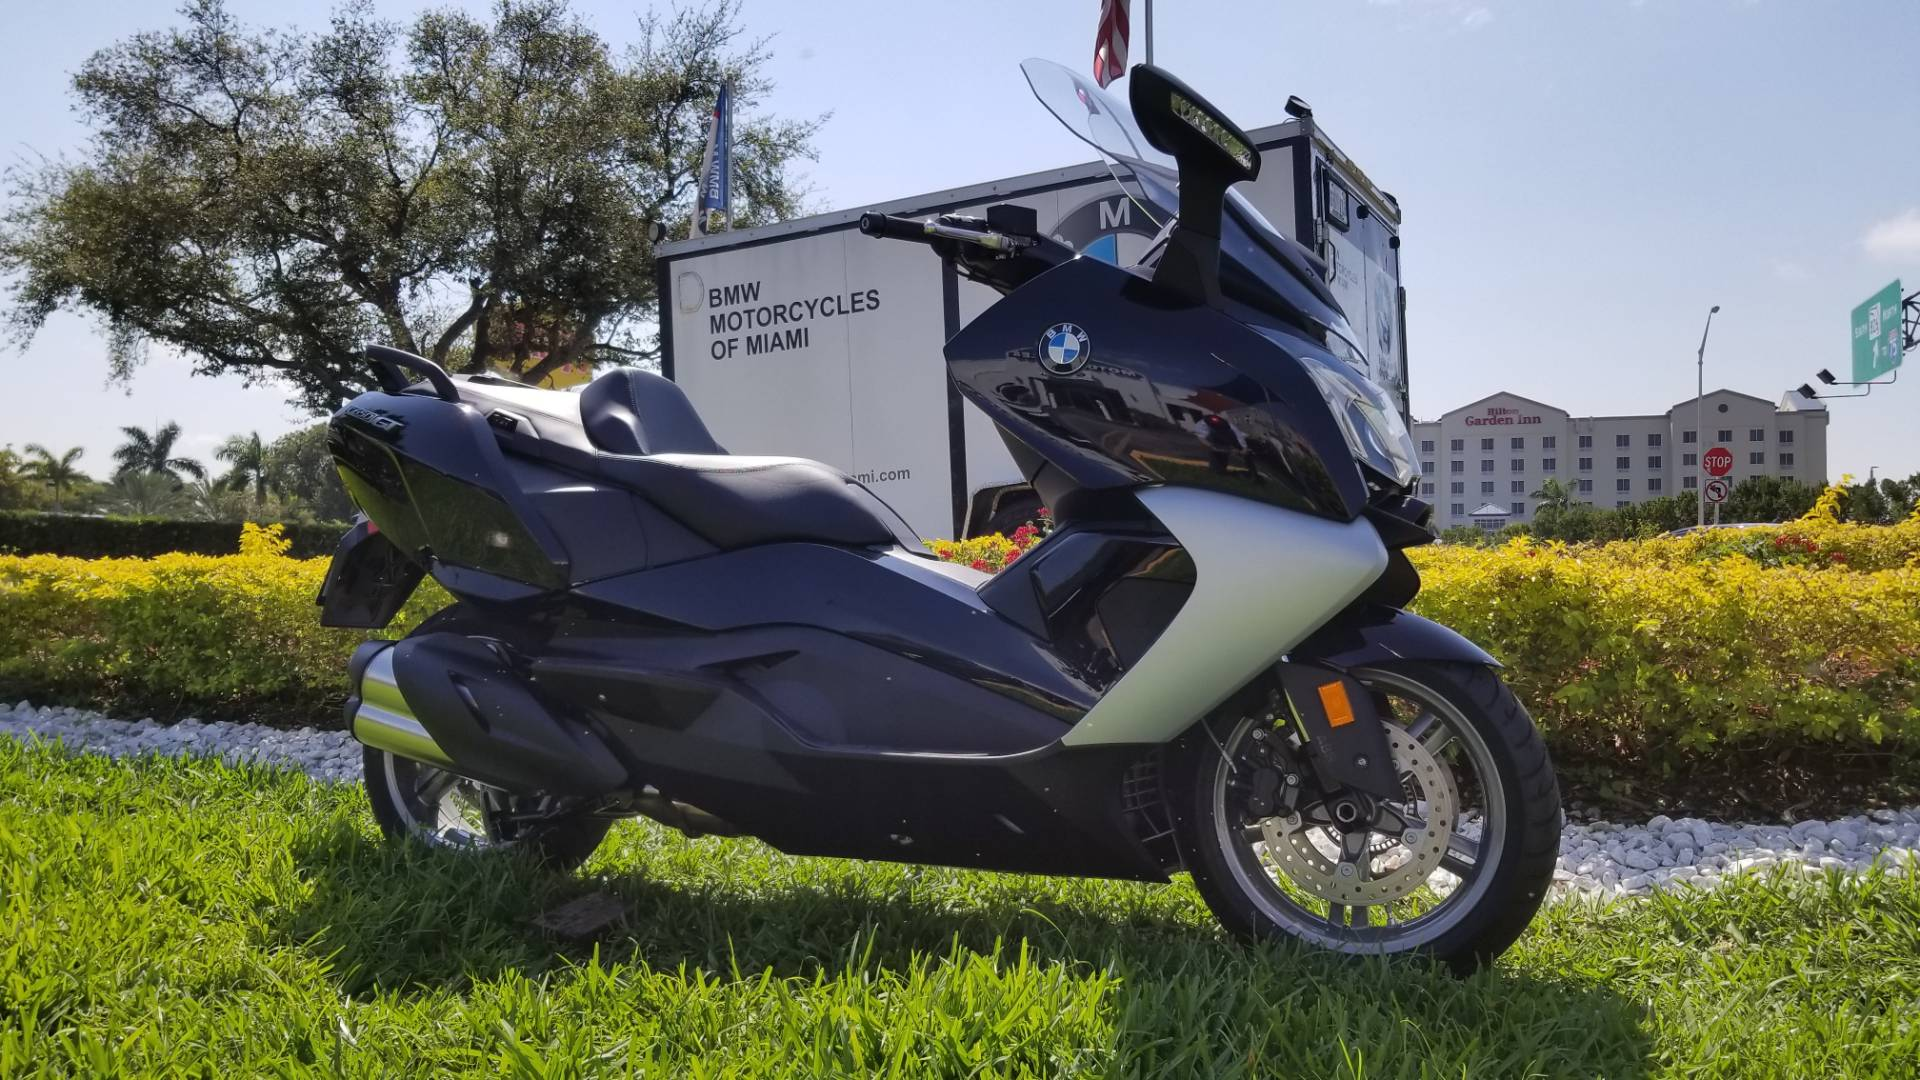 New 2019 BMW C 650 GT for sale, BMW C 650GT for sale, BMW Motorcycle C650GT, new BMW Scooter, Maxi Scooter, BMW. BMW Motorcycles of Miami, Motorcycles of Miami, Motorcycles Miami, New Motorcycles, Used Motorcycles, pre-owned. #BMWMotorcyclesOfMiami #MotorcyclesOfMiami #MotorcyclesMiami - Photo 14